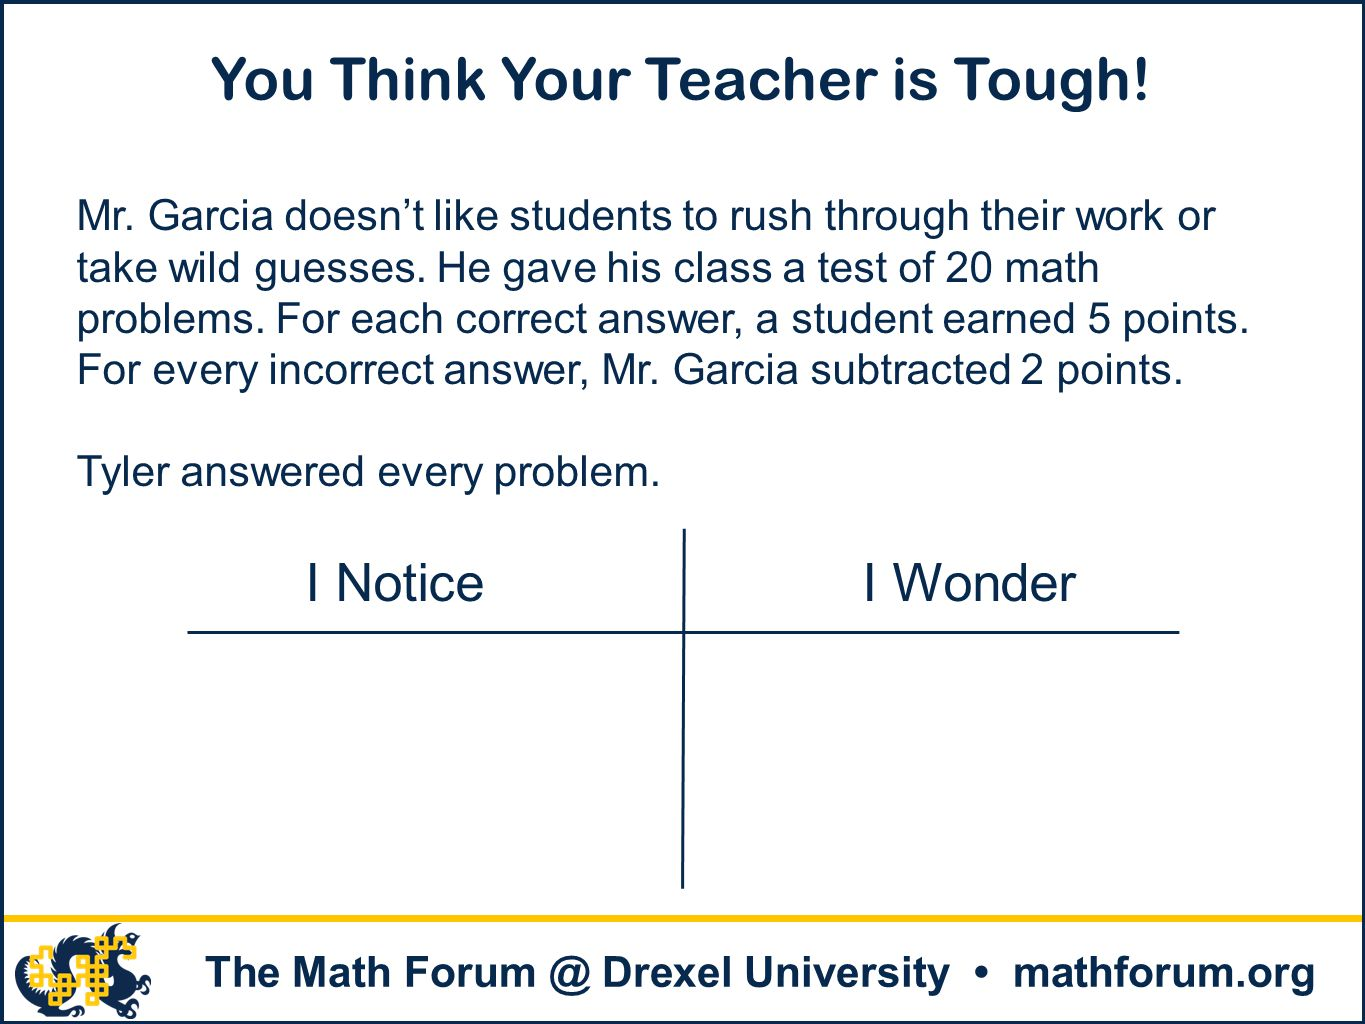 . The Math Forum @ Drexel University mathforum.org You Think Your Teacher is Tough! Mr. Garcia doesn't like students to rush through their work or tak